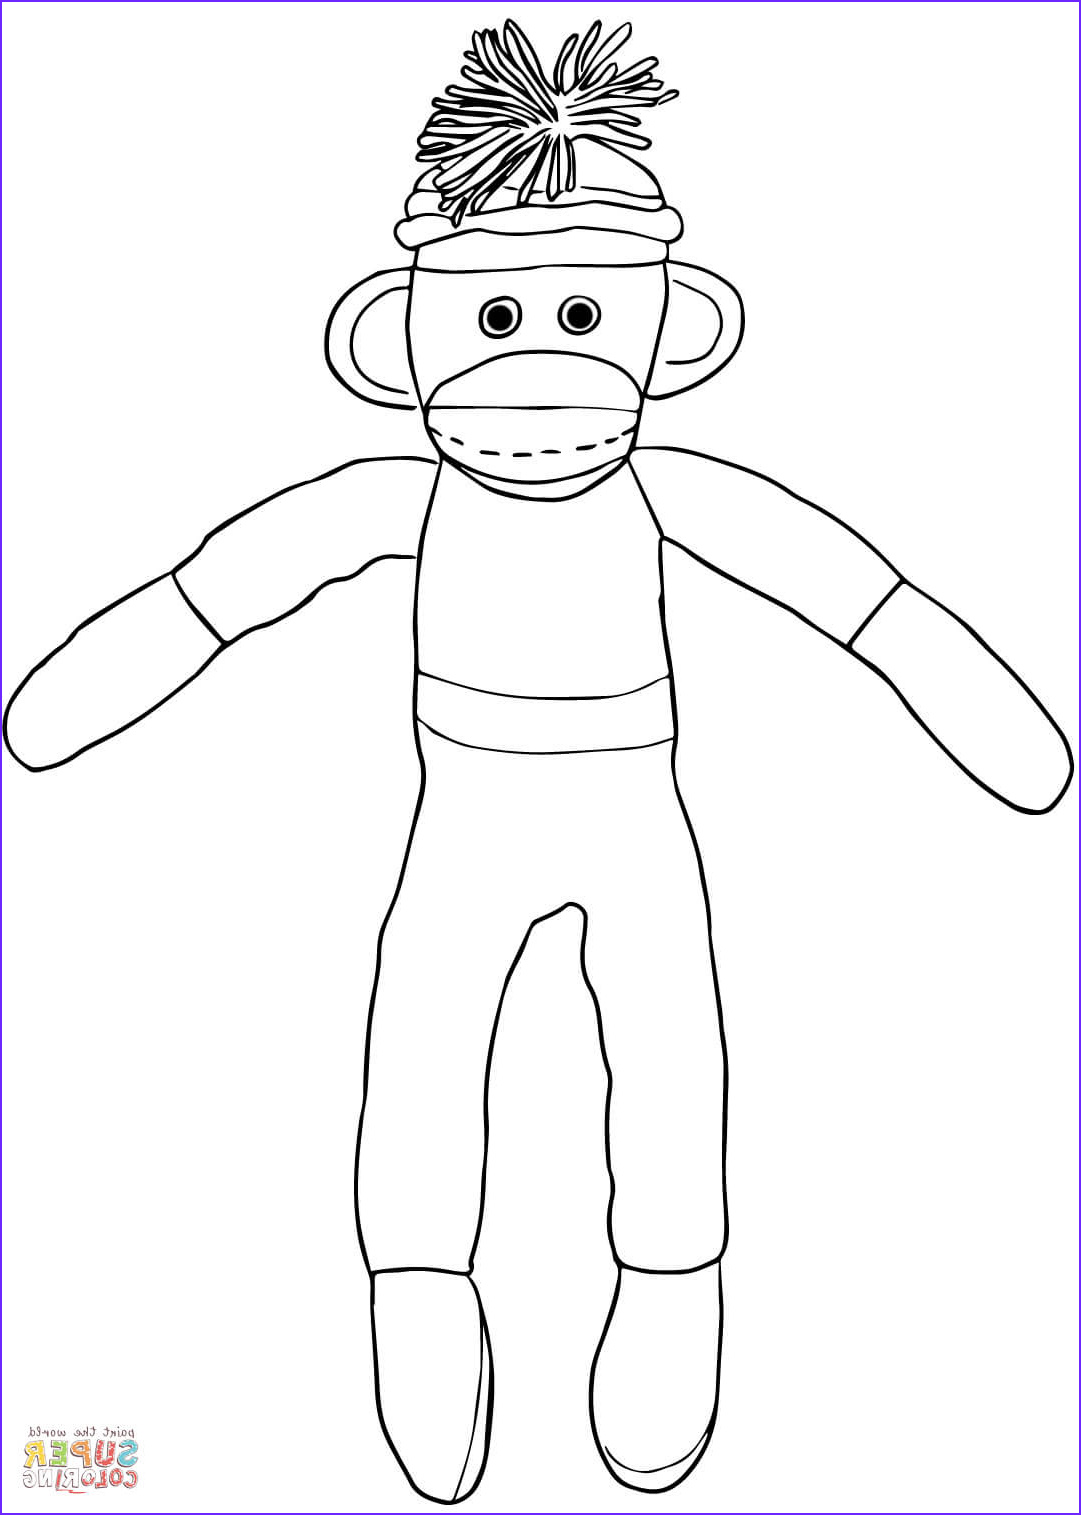 Socks Coloring Elegant Collection sock Coloring Page at Getcolorings